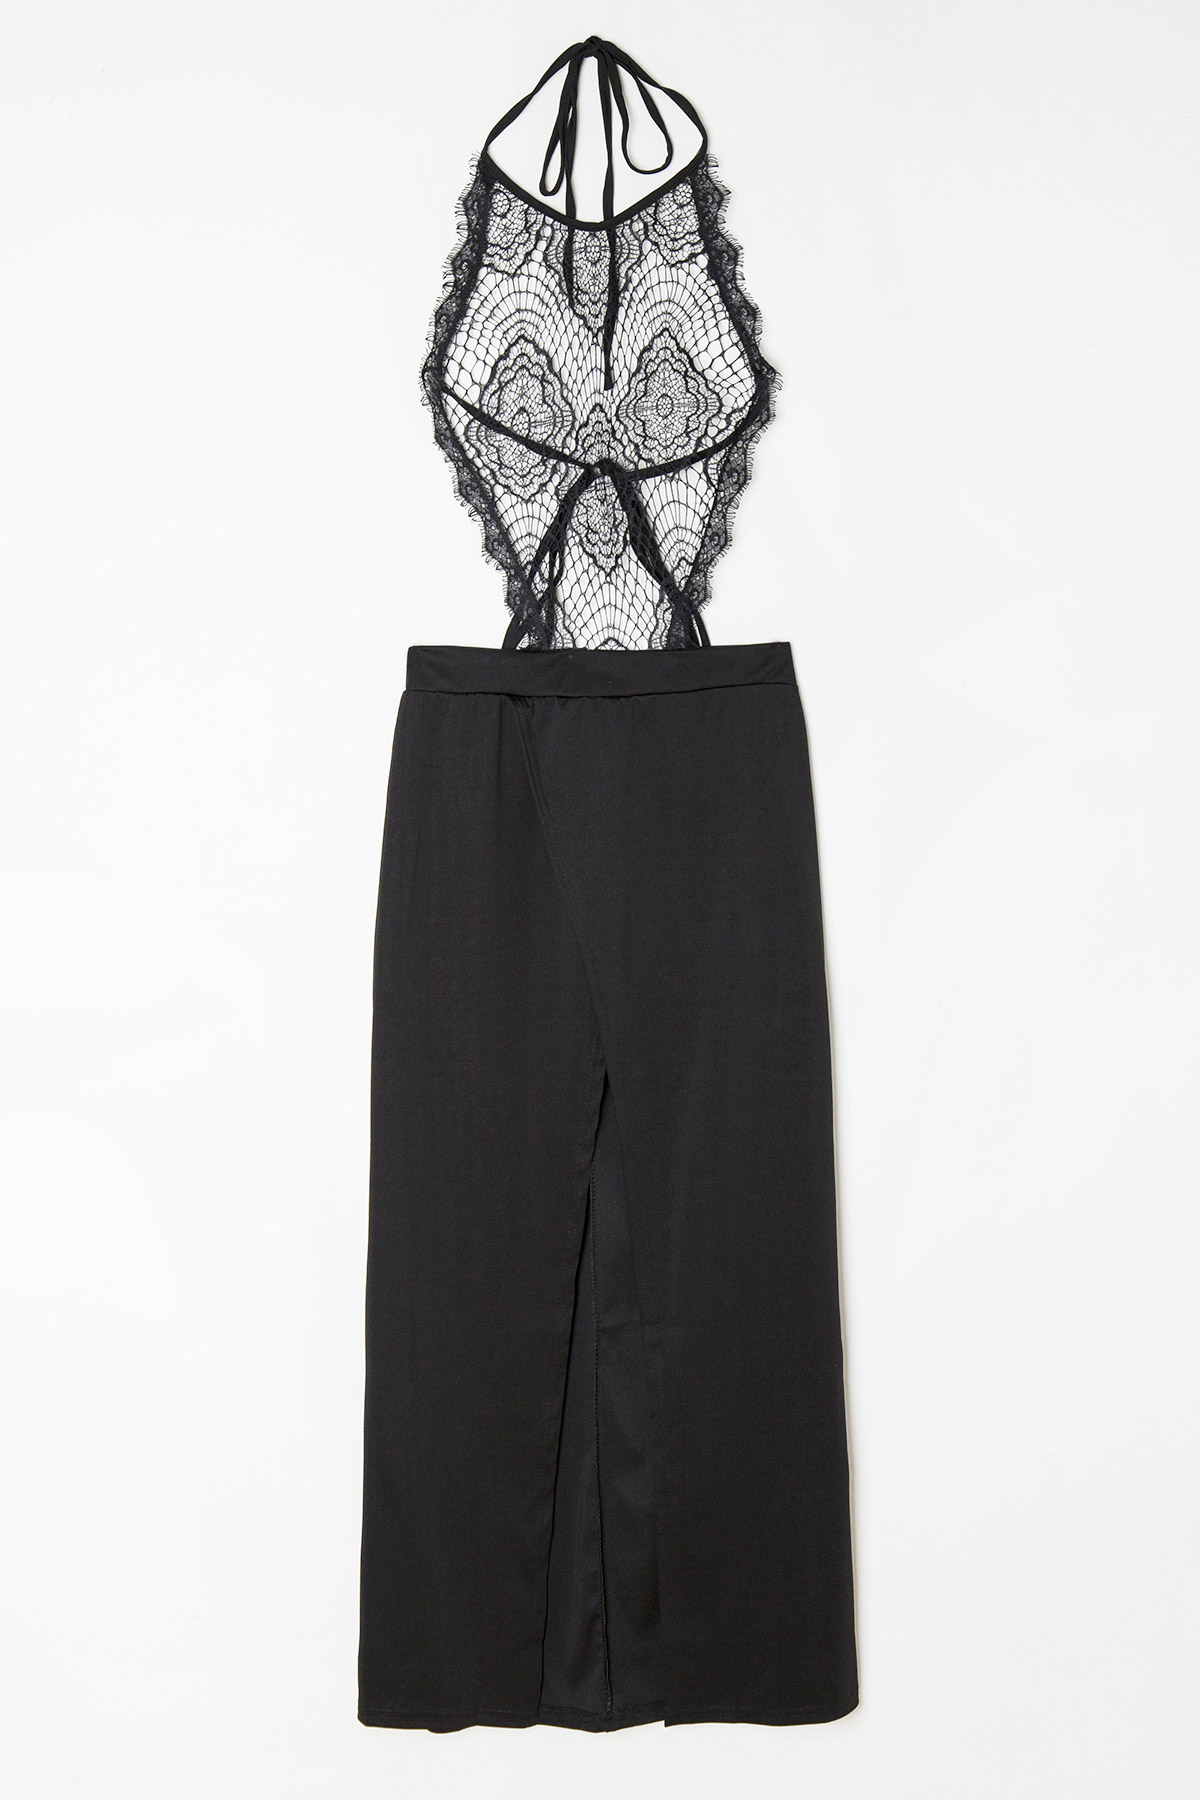 Halter Neck See-Through Lace Splicing Dress - BLACK S